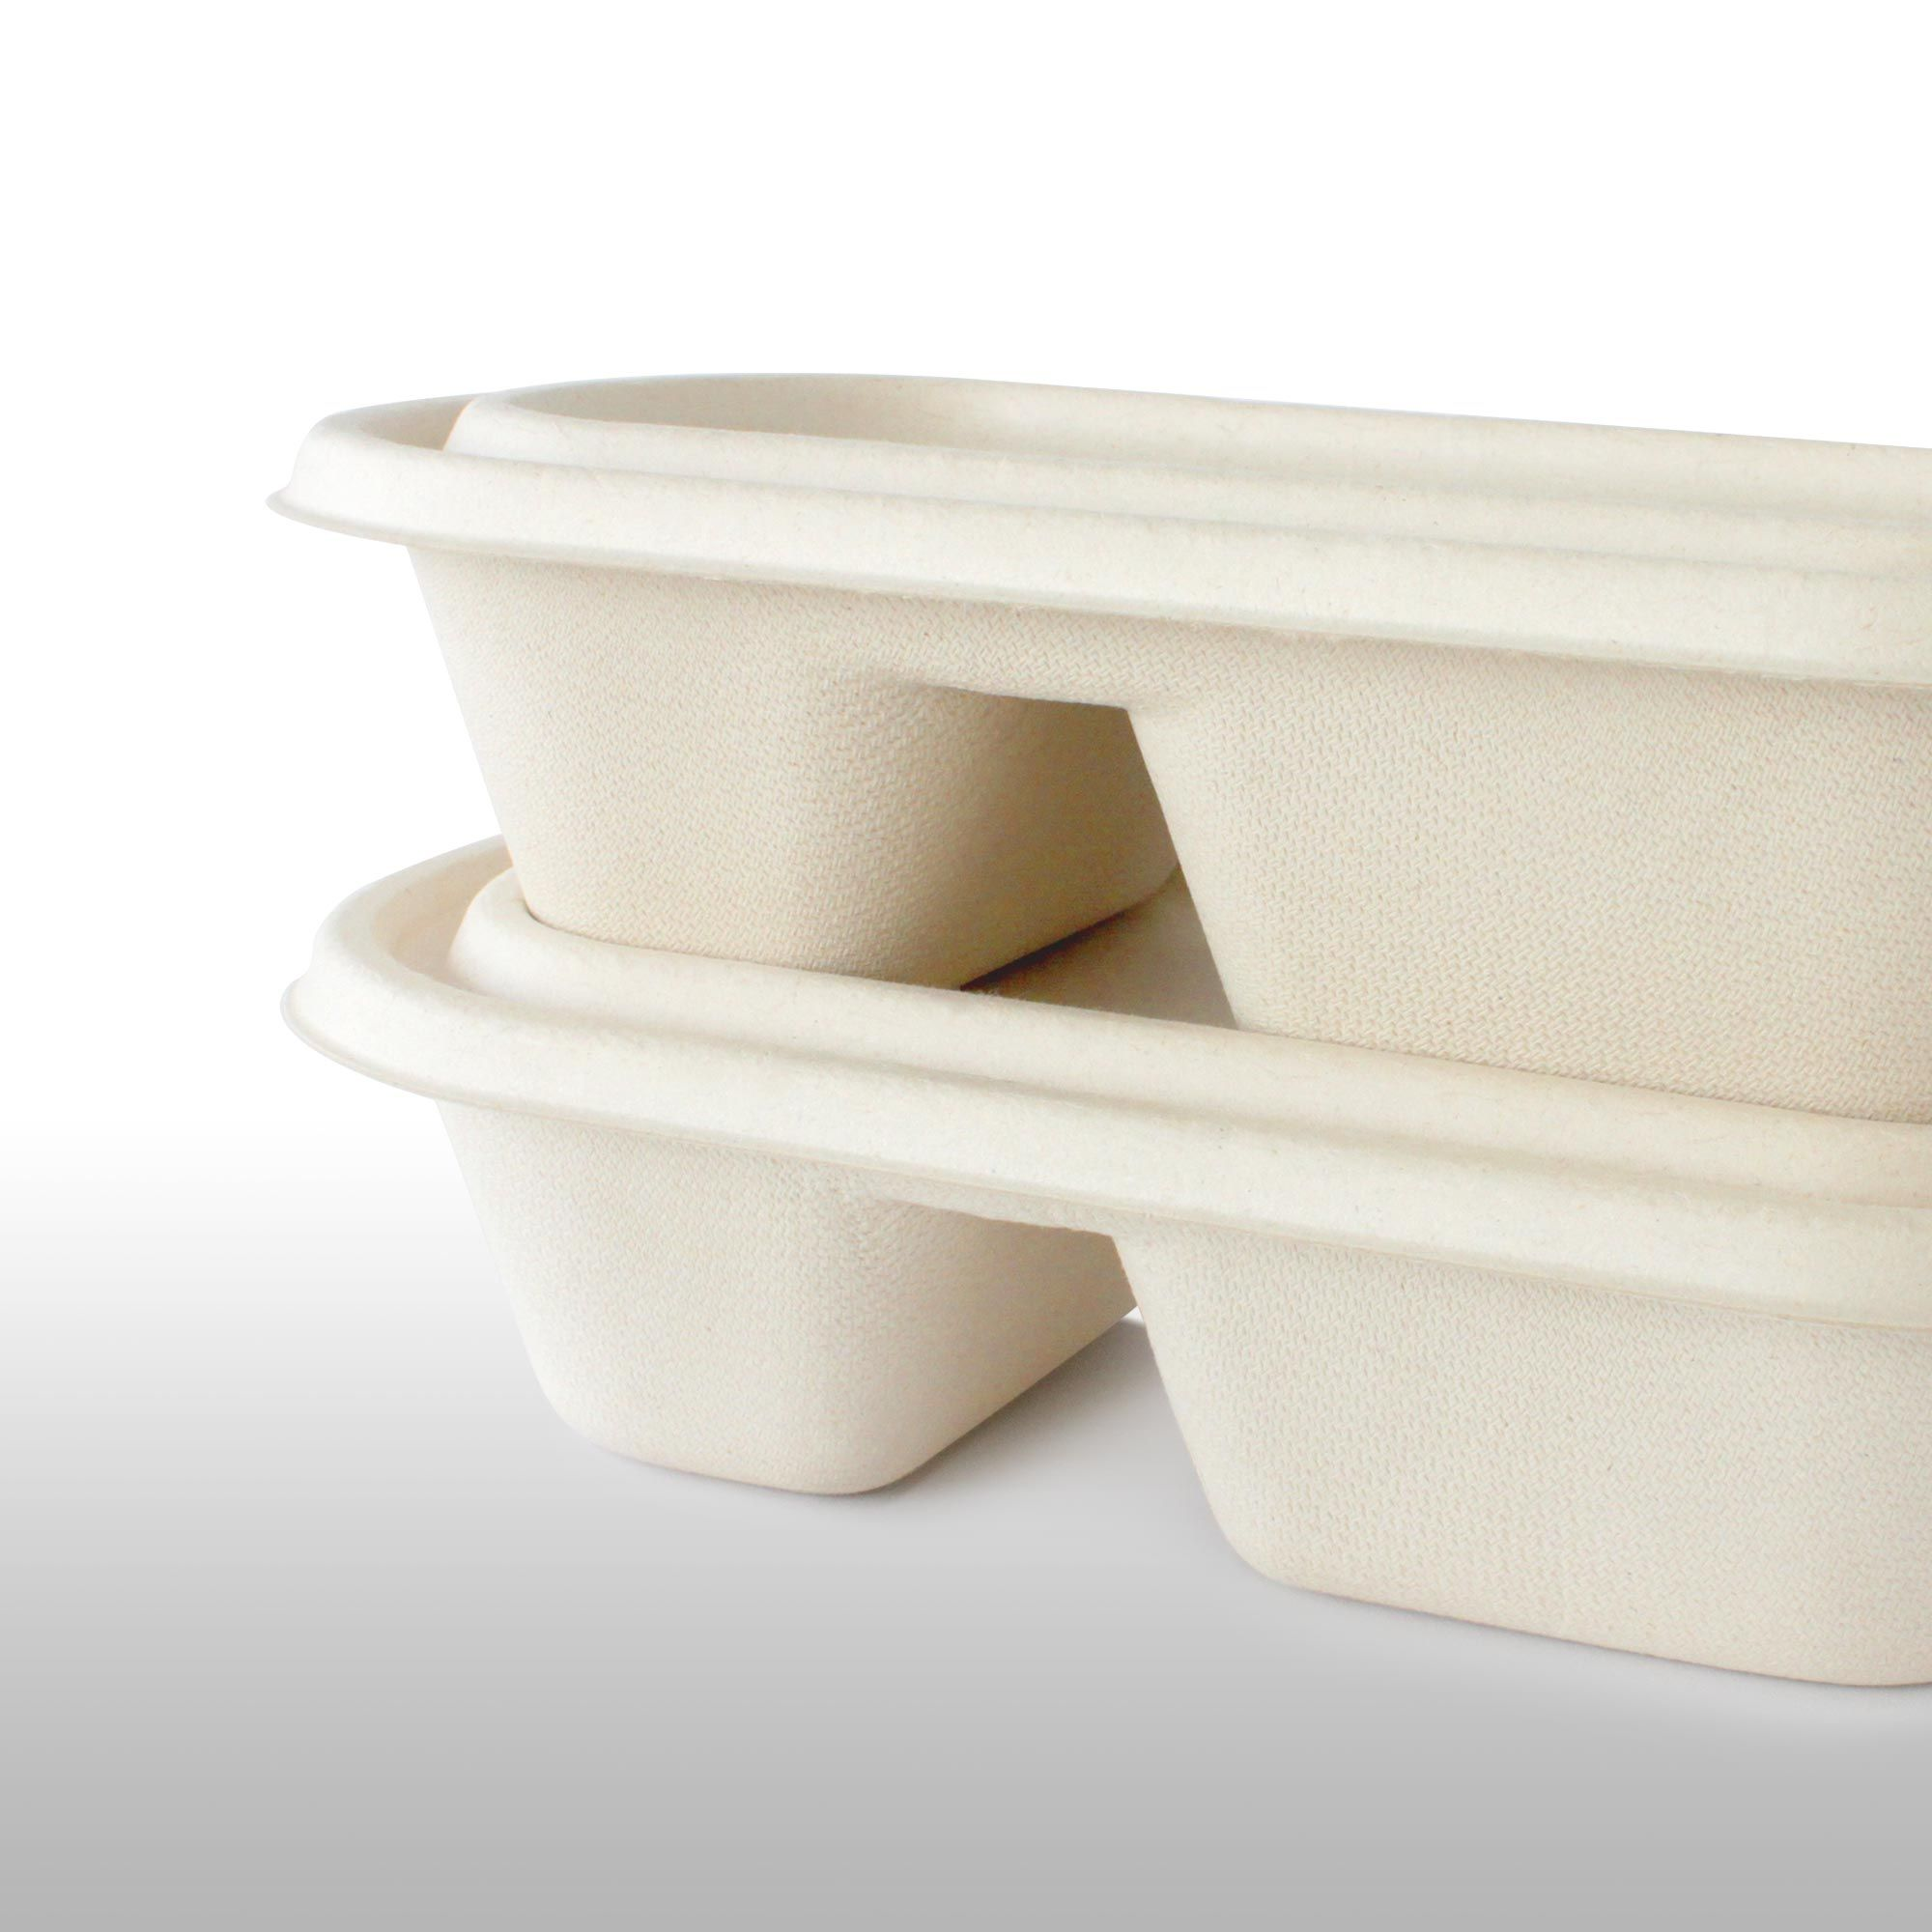 Sugarcane Container - Bagasse Food Container